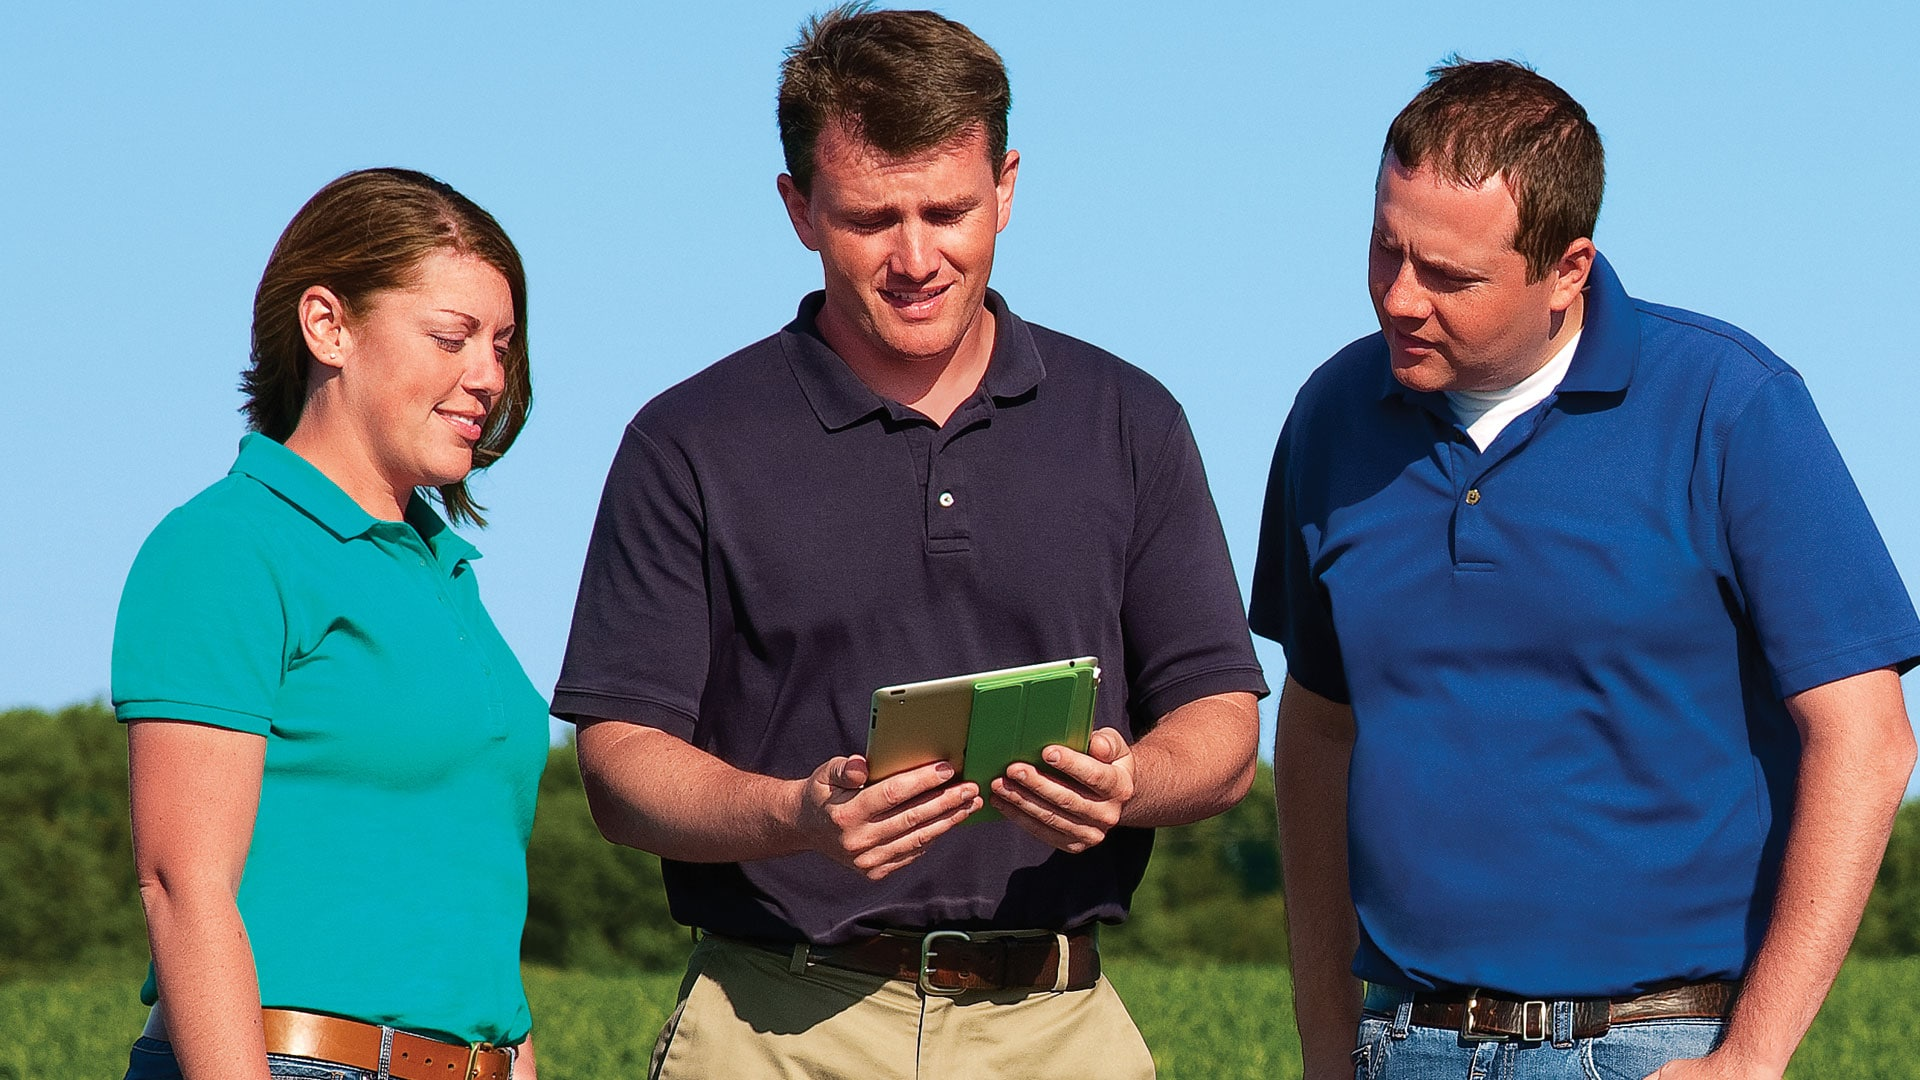 Group standing in field with mobile device